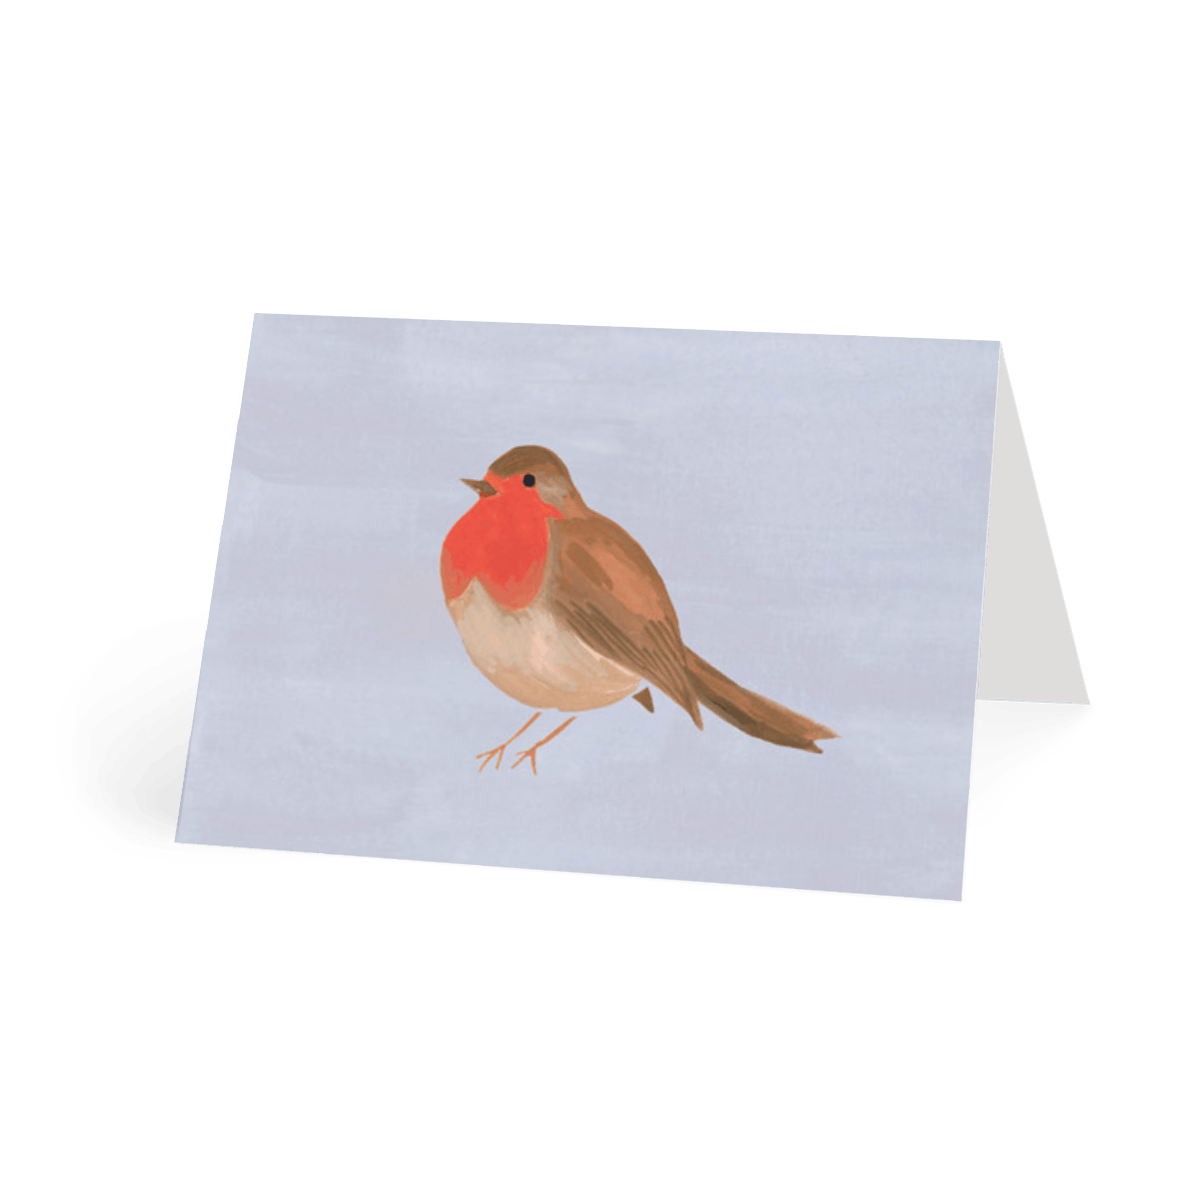 Https%3a%2f%2fwww.papier.com%2fproduct image%2f49705%2f14%2fred robin 12182 front 1539959882.png?ixlib=rb 1.1